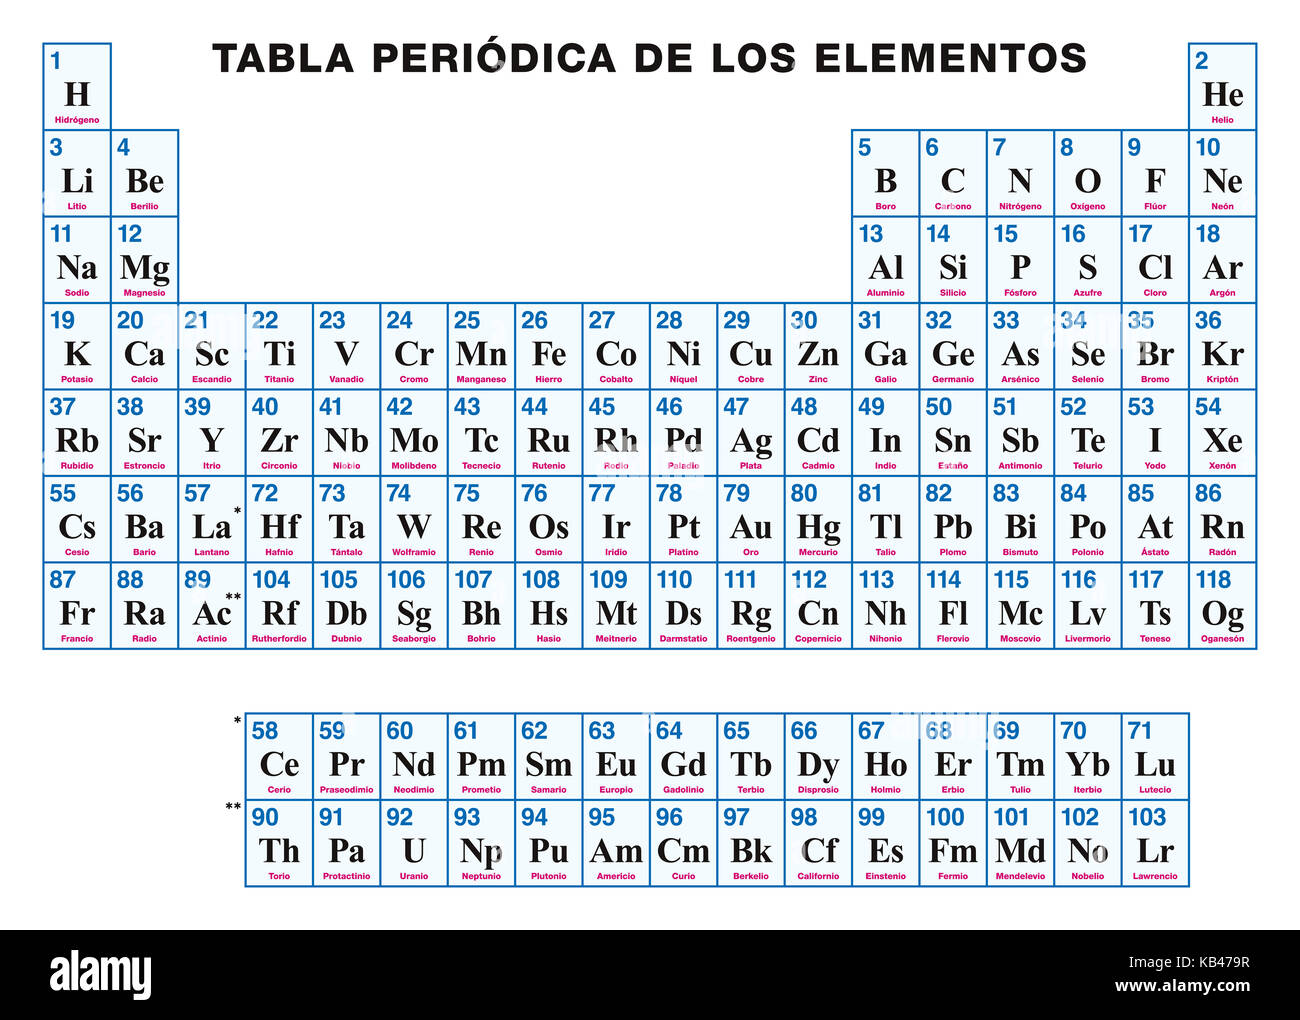 Periodic Table Of The Elements Spanish Tabular Arrangement Of